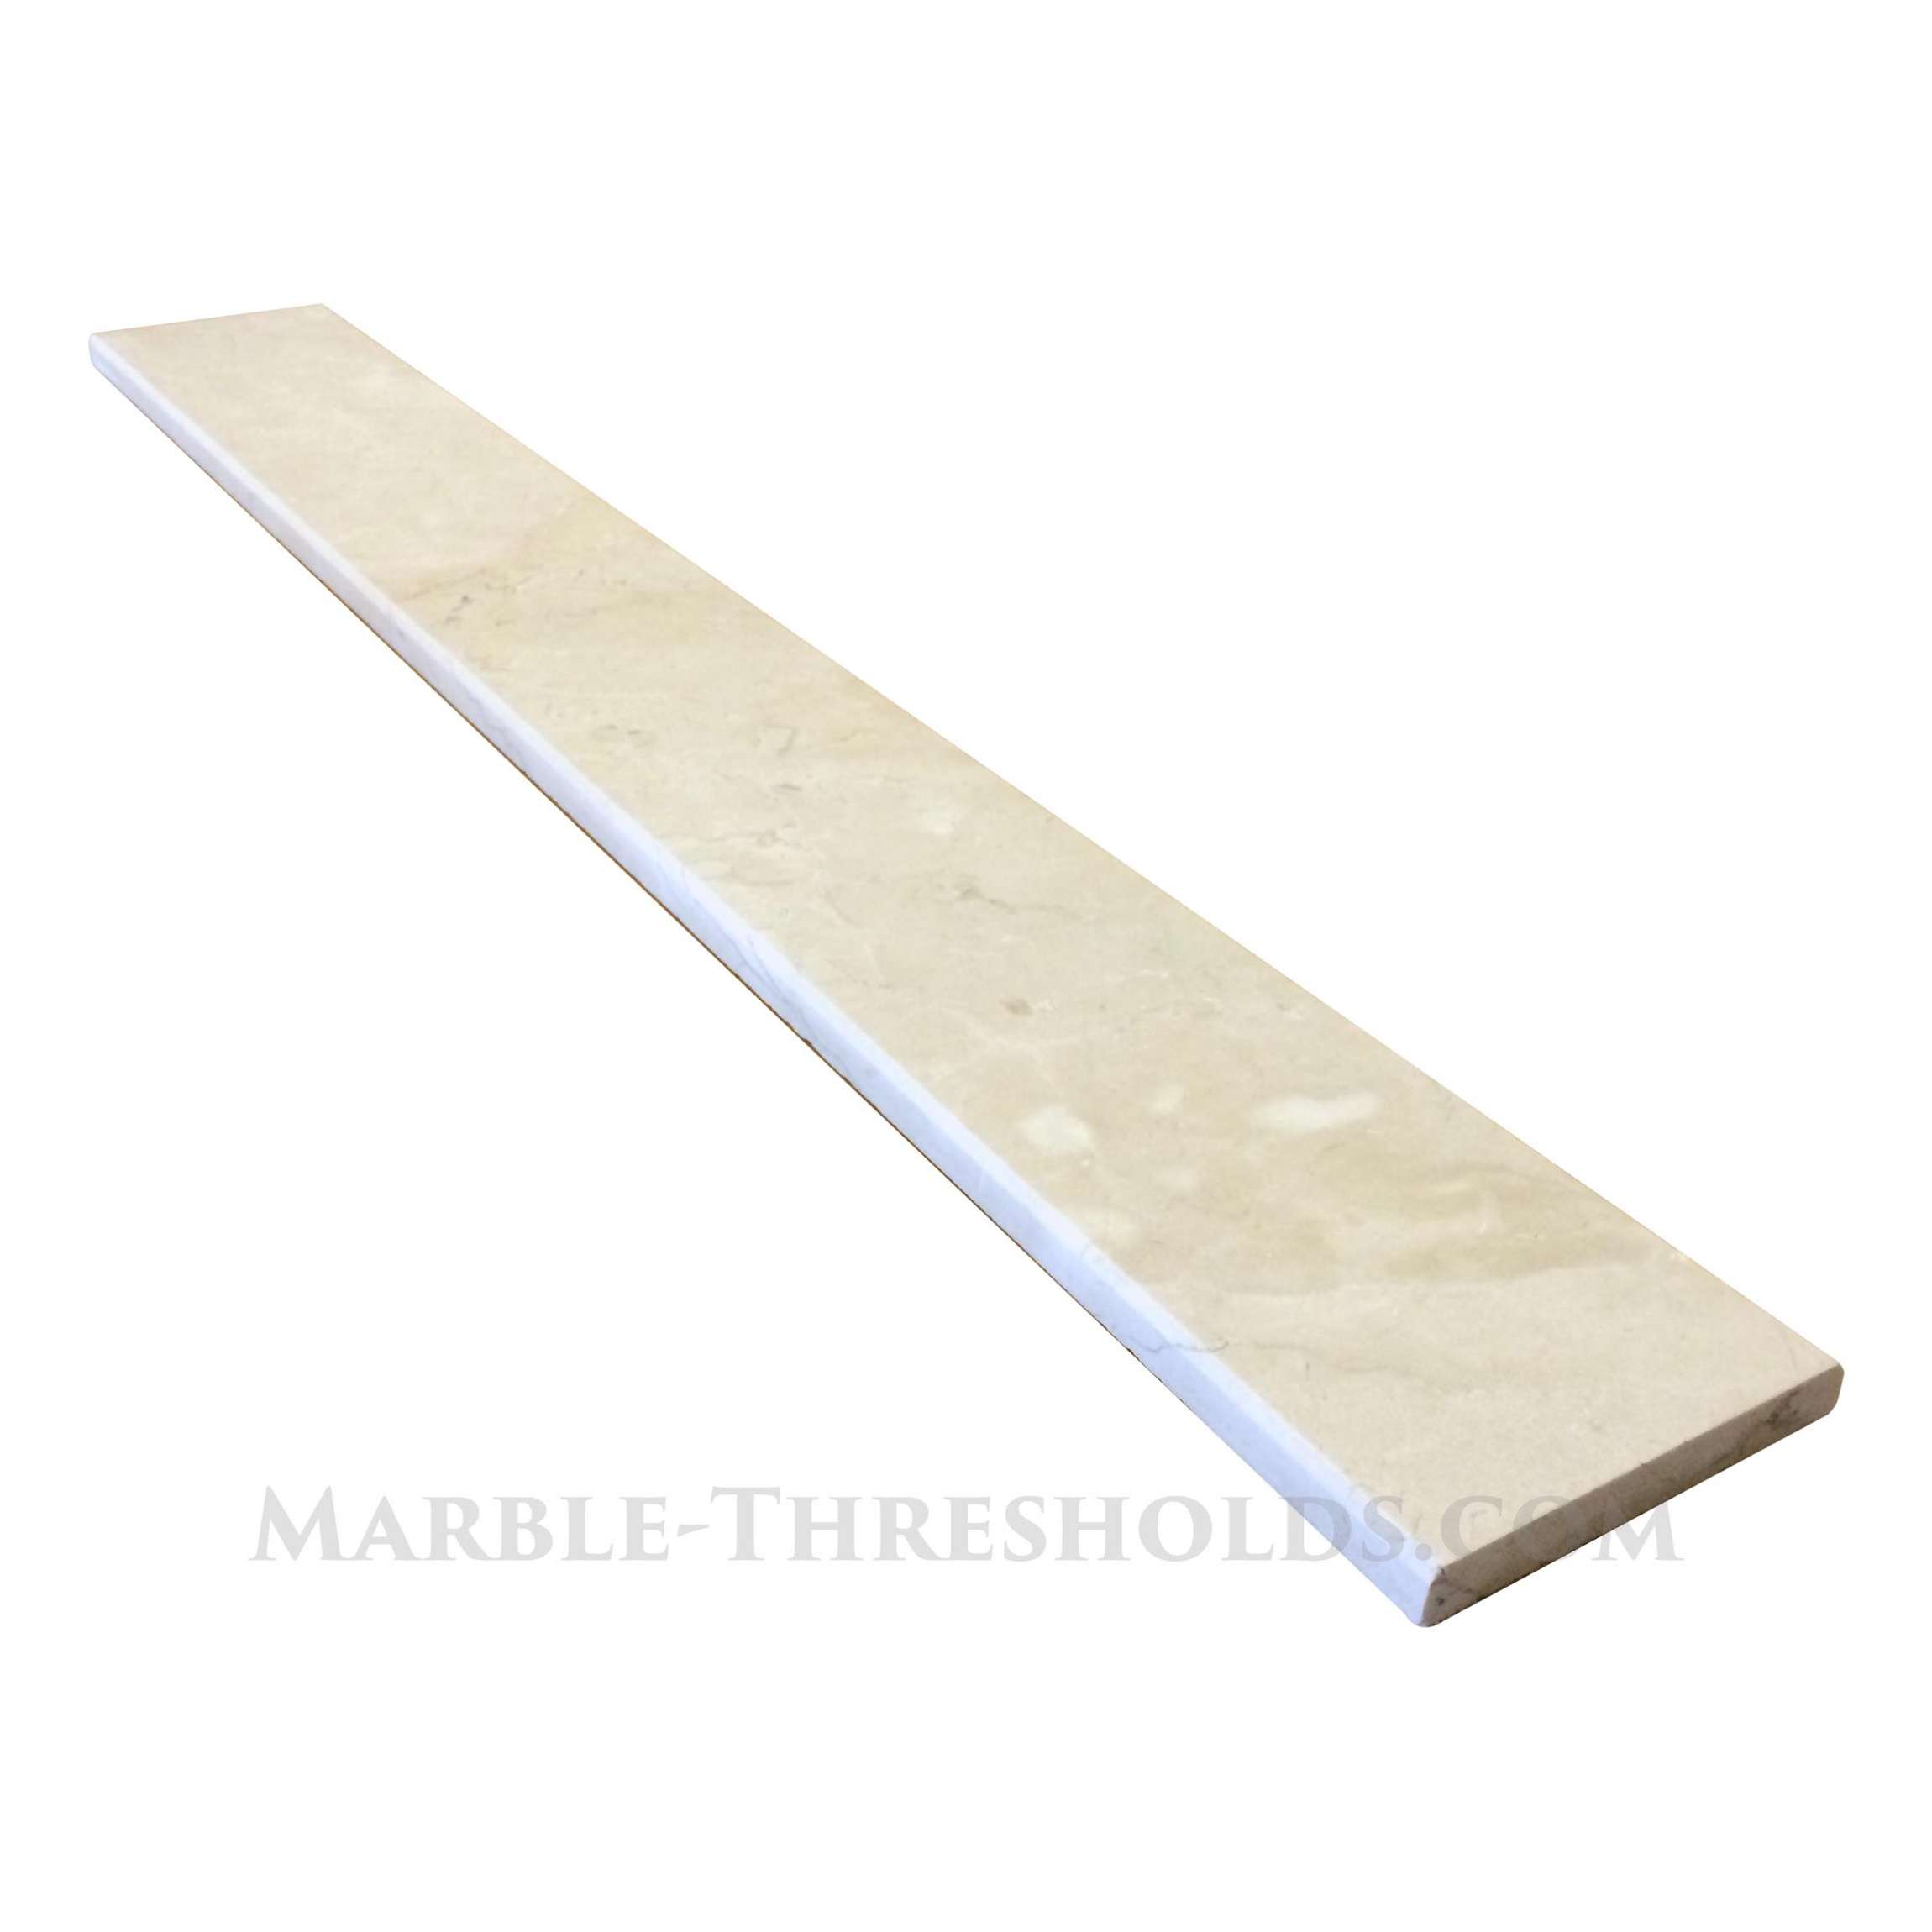 Crema Marfil Threshold